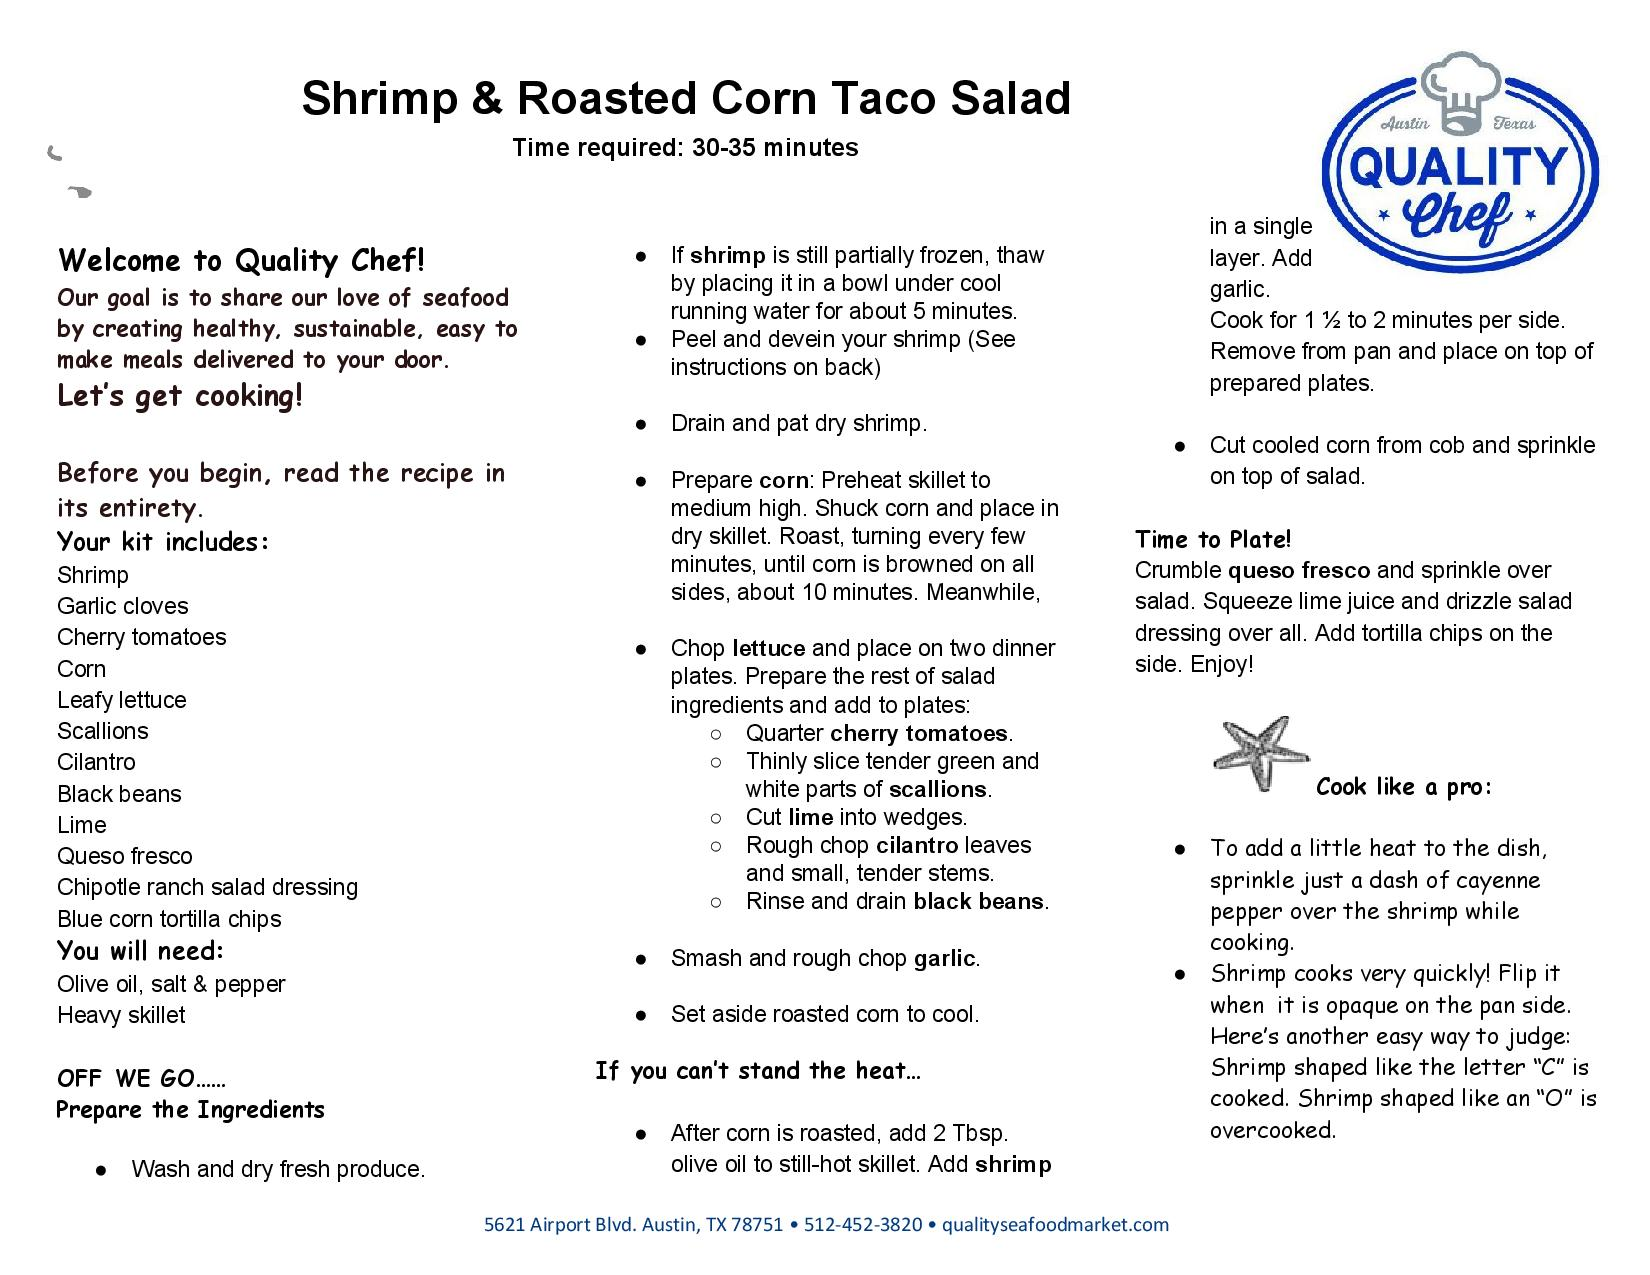 QC Shrimp  Roasted Corn Taco Salad (3)-page-001.jpg